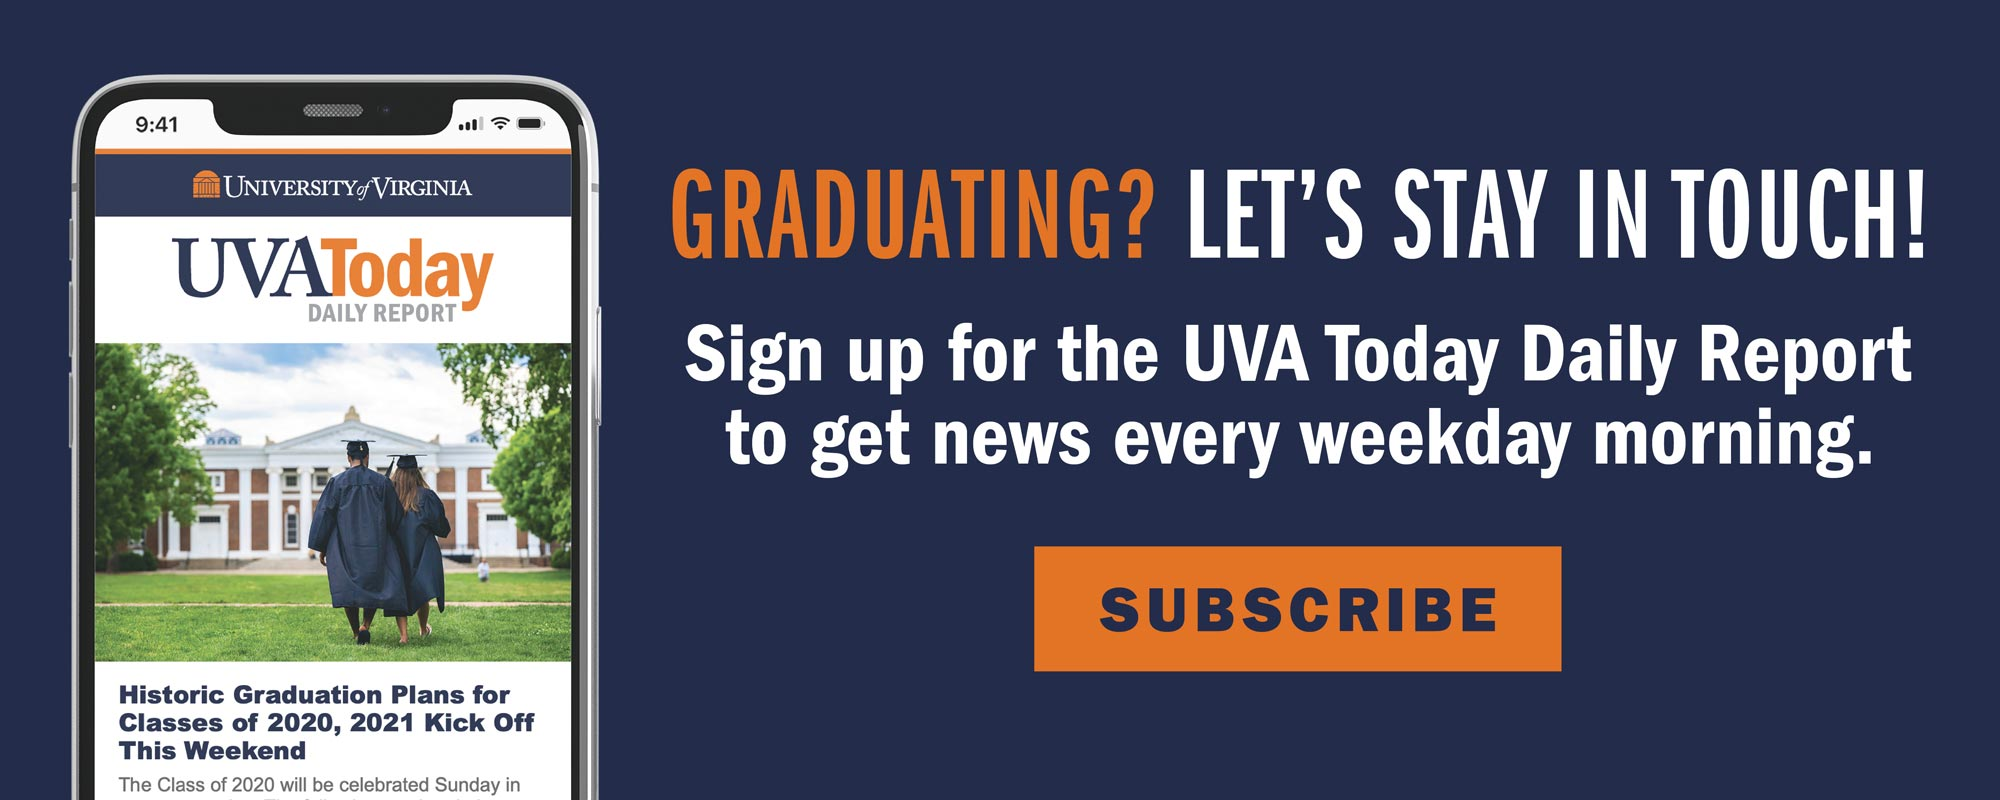 Graduating? Let's stay in touch! Sign up for the UVA Today Daily Report to get news every weekday morning. Subscribe.